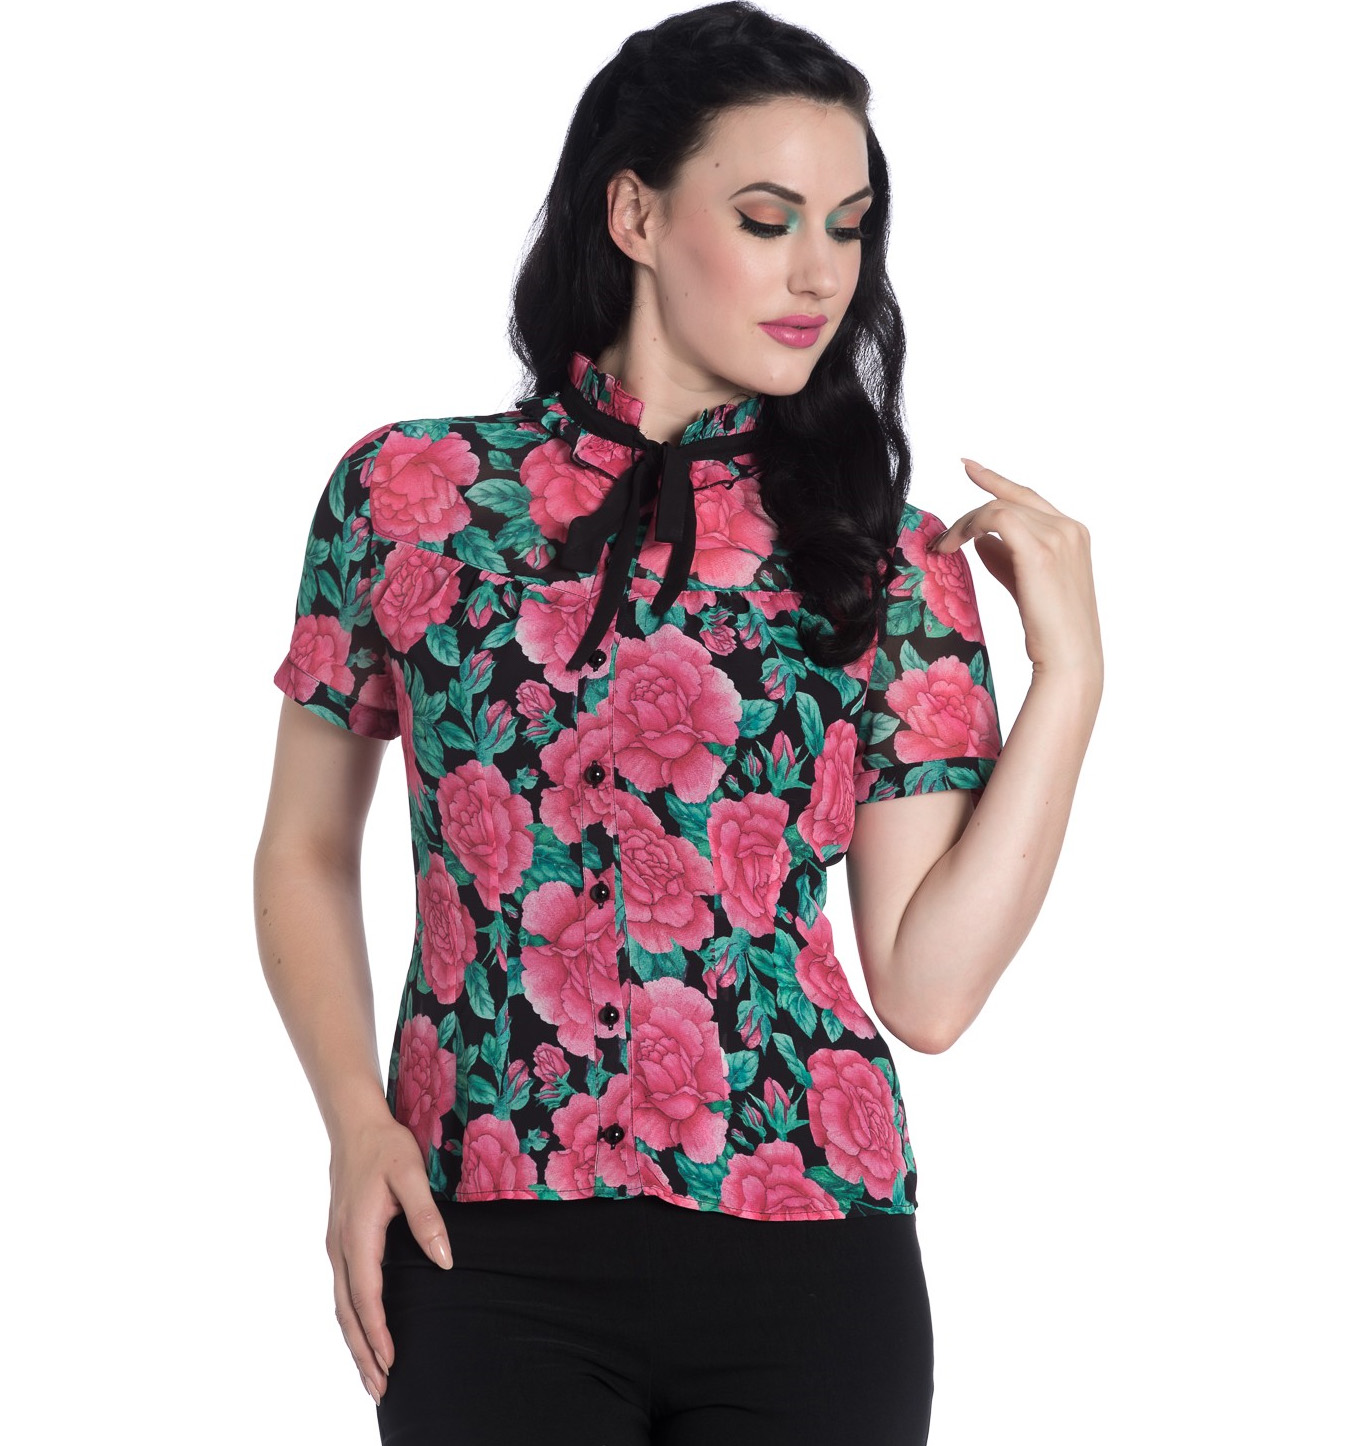 Hell-Bunny-Shirt-Top-Flowers-Roses-EDEN-ROSE-Black-Pink-Blouse-All-Sizes thumbnail 27